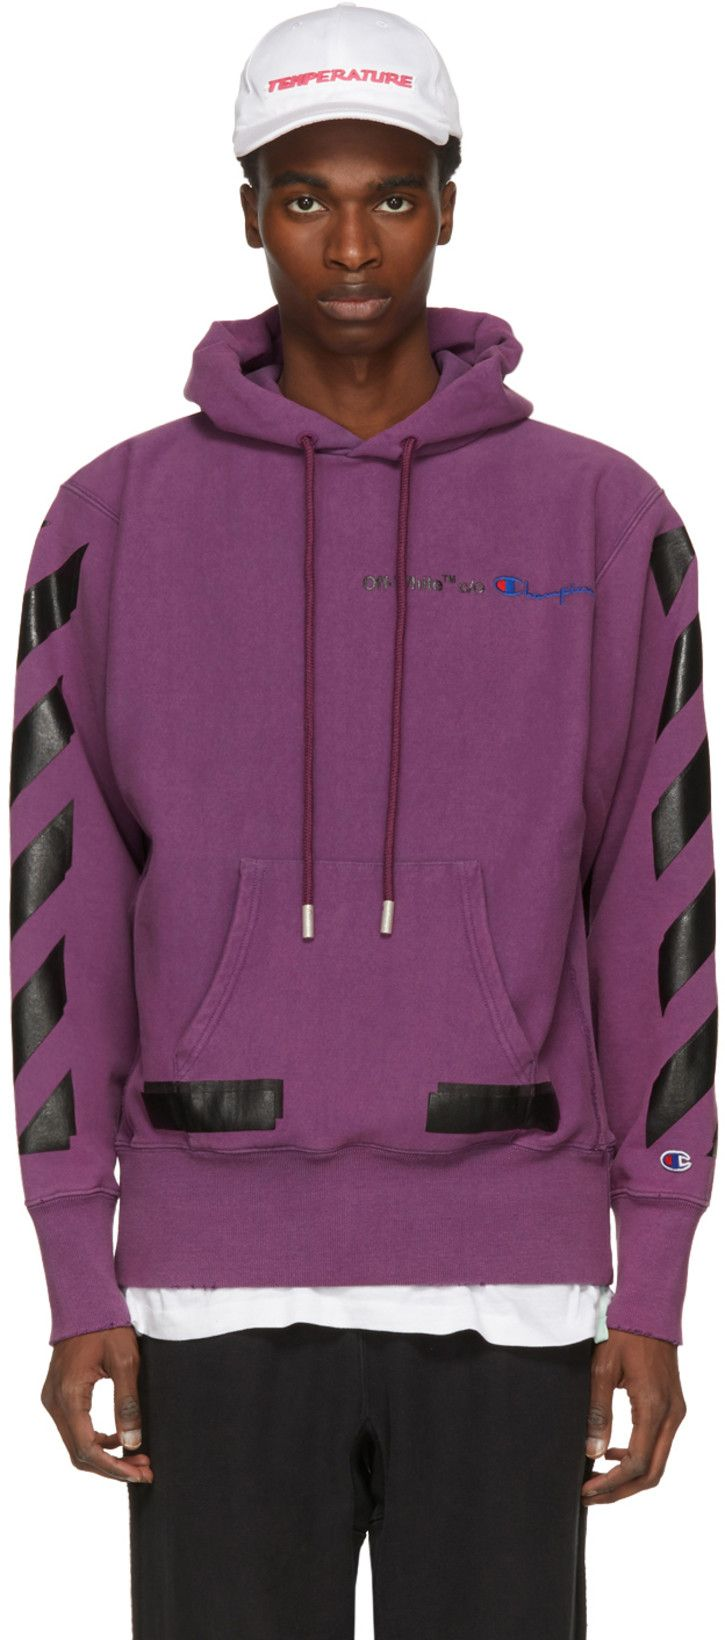 753c3b2aec5b Off-White - Purple Champion Reverse Weave Edition Hoodie